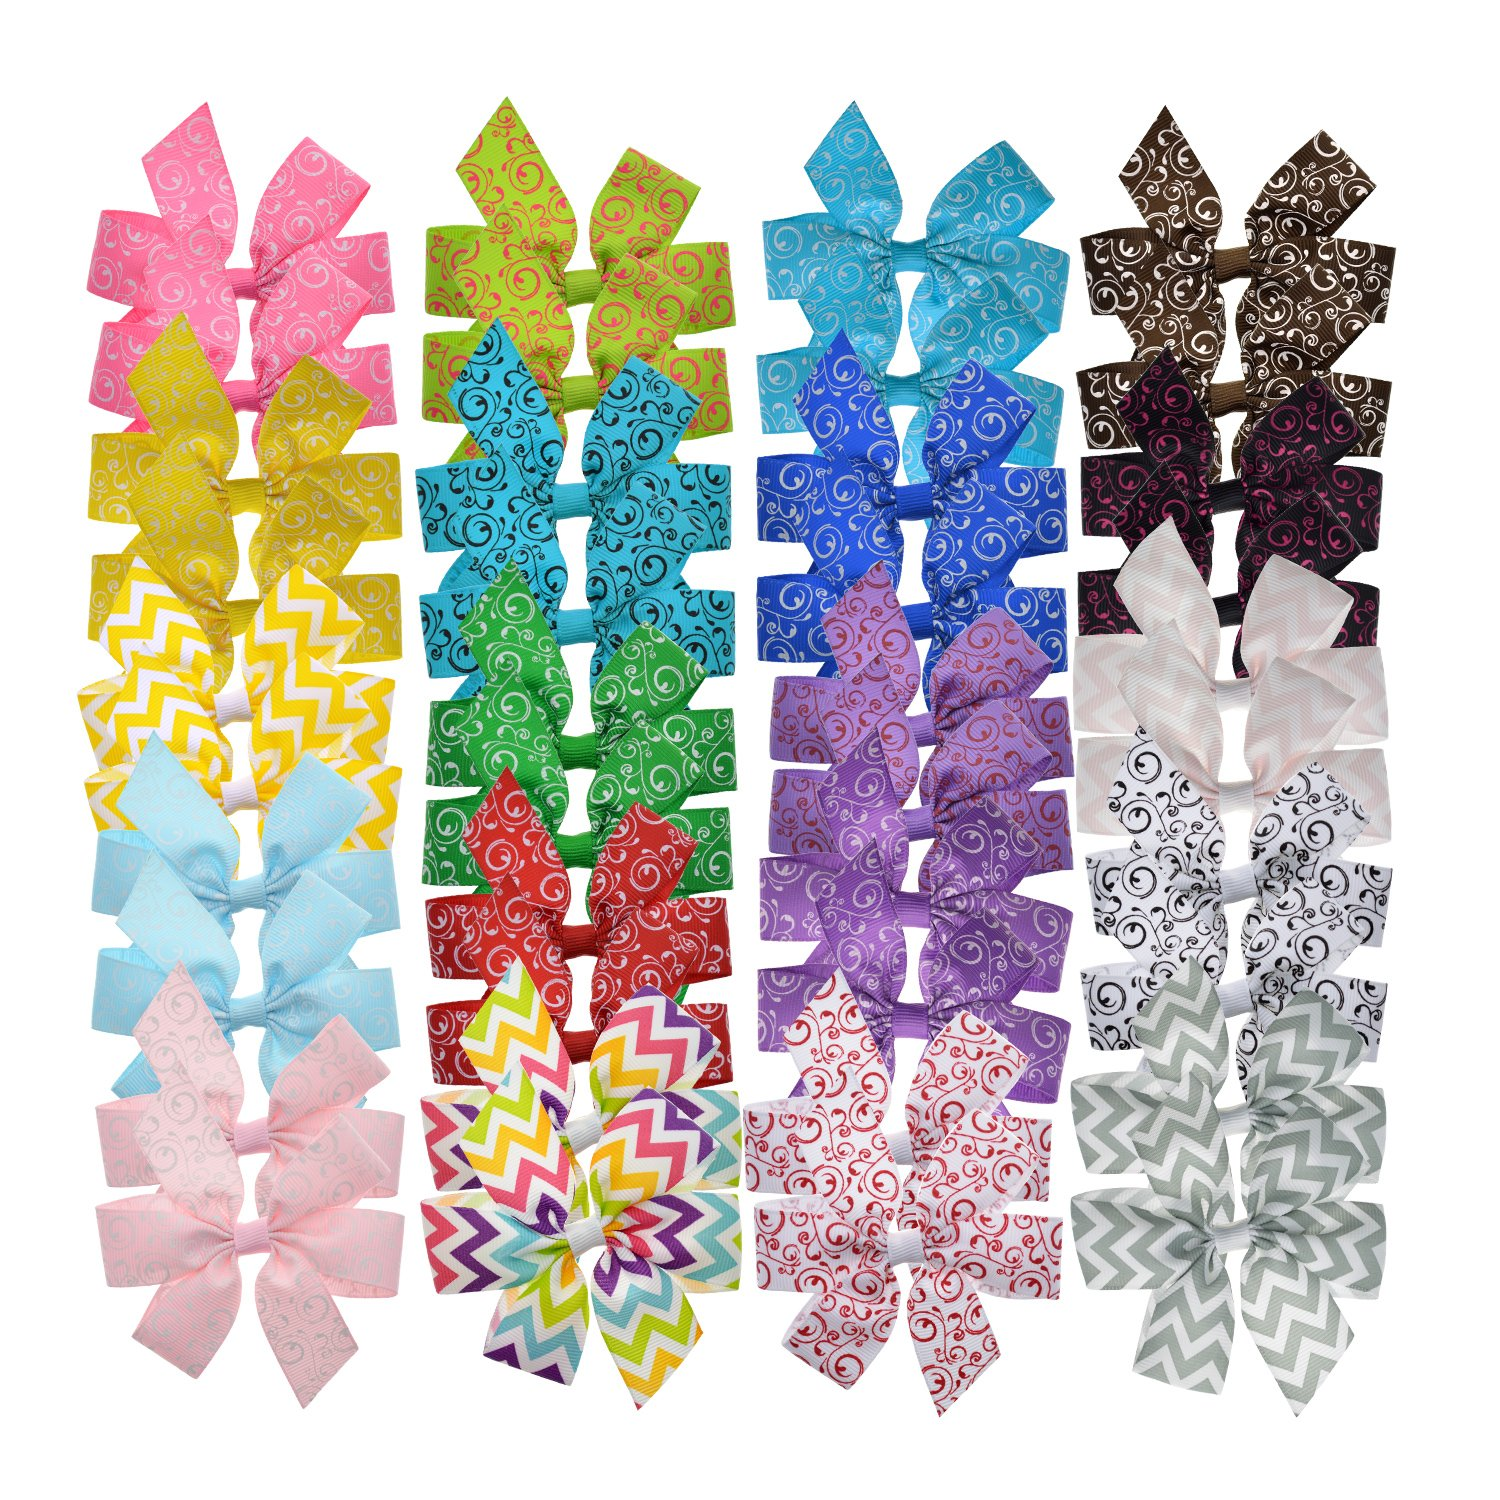 3 In Small Hair Bows Barrettes For Baby Toddler Little Girls Kids 20 Pairs LCLHB